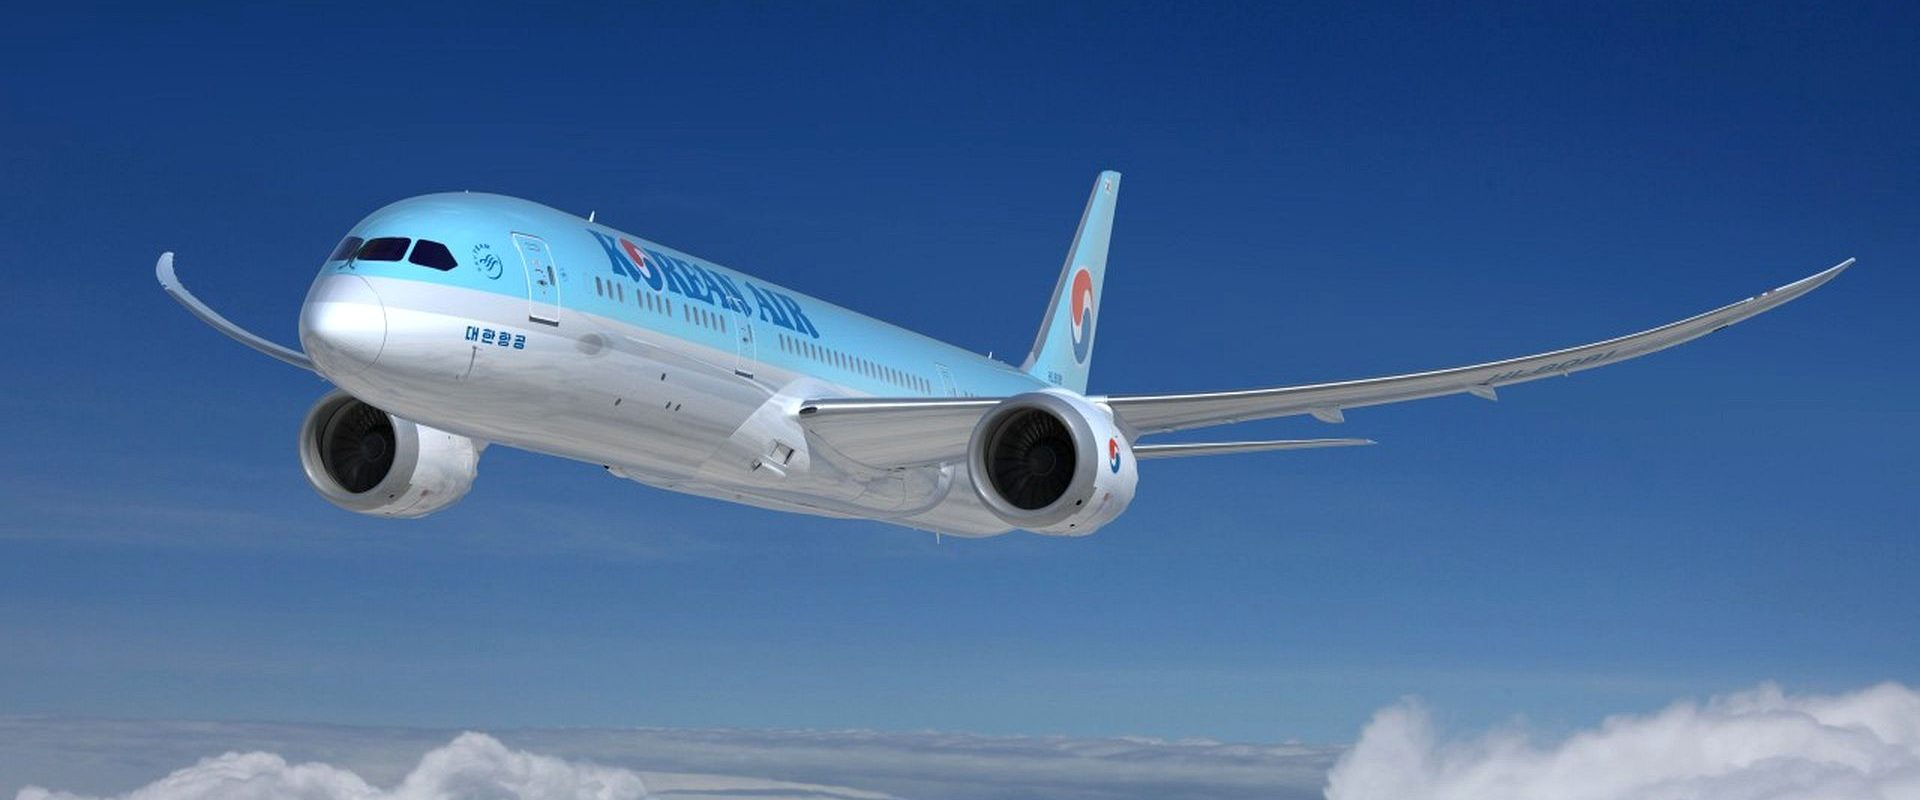 Korean airline company received profit in the 2nd quarter